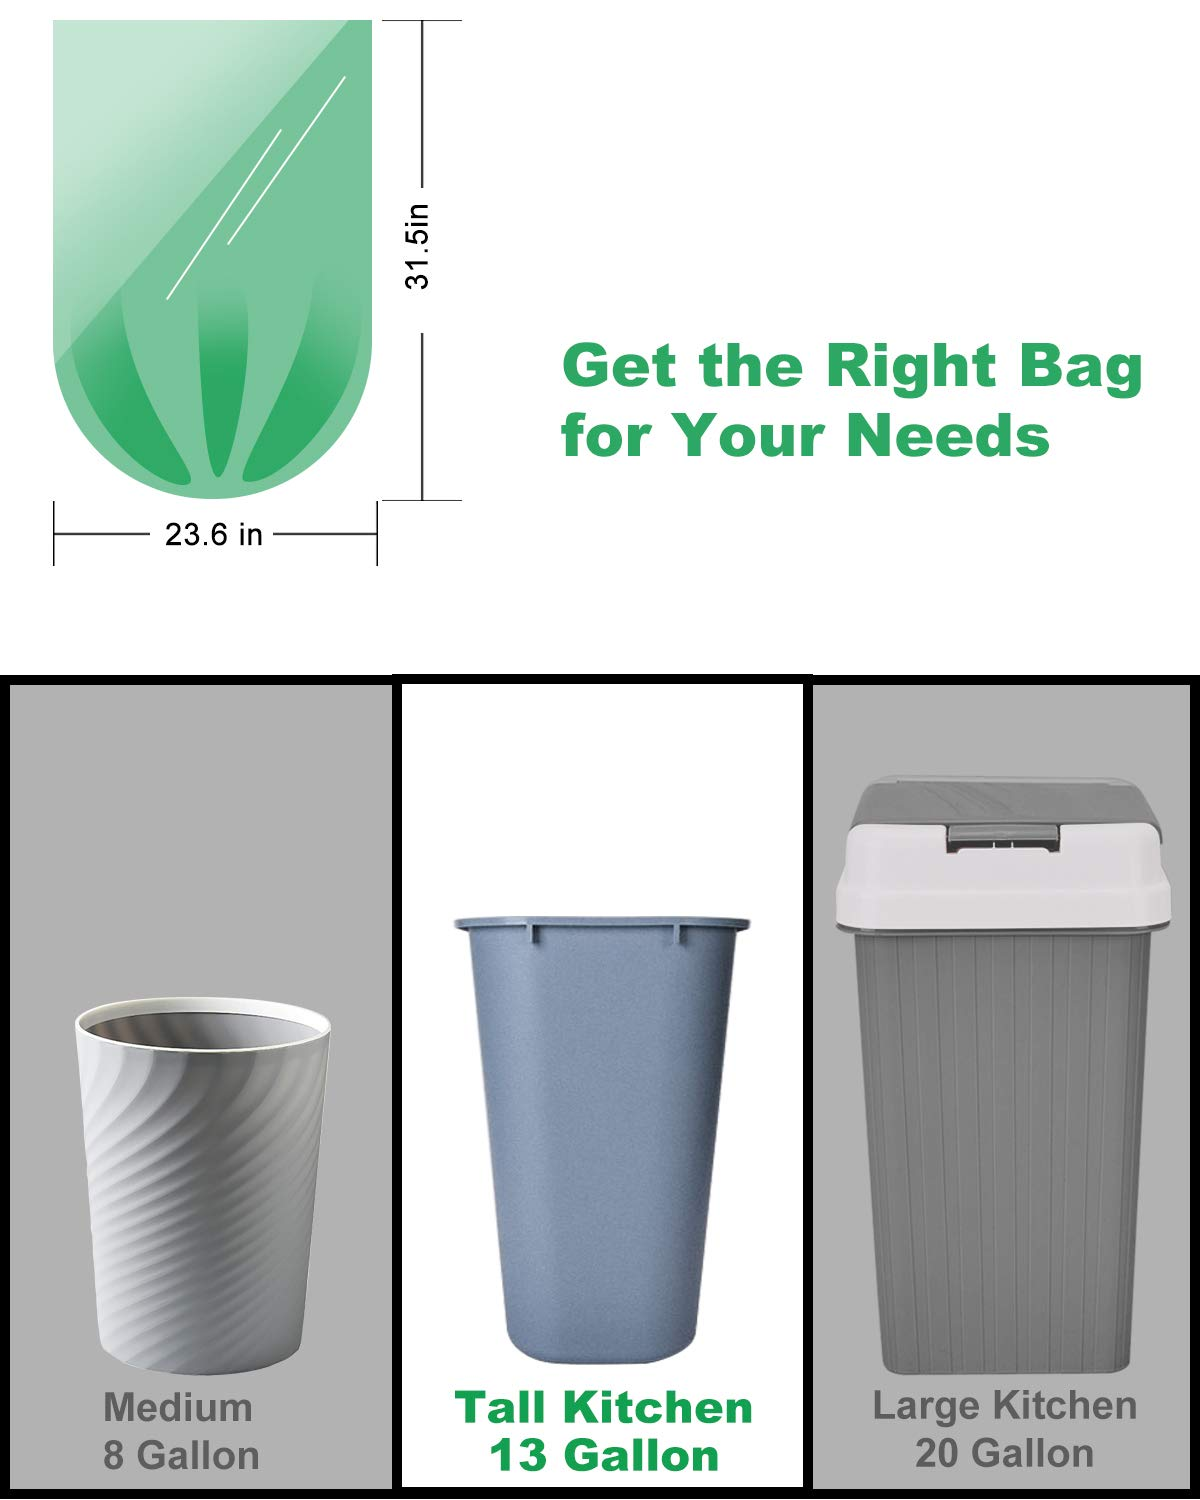 AYOTEE Tall Kitchen Trash Bags-13-15 Gallon Compostable Garbage Trash bags, Heavy Duty Unscented 1.18Mils 55 Liter Rubbish Can Liners for Kitchen Garden Home